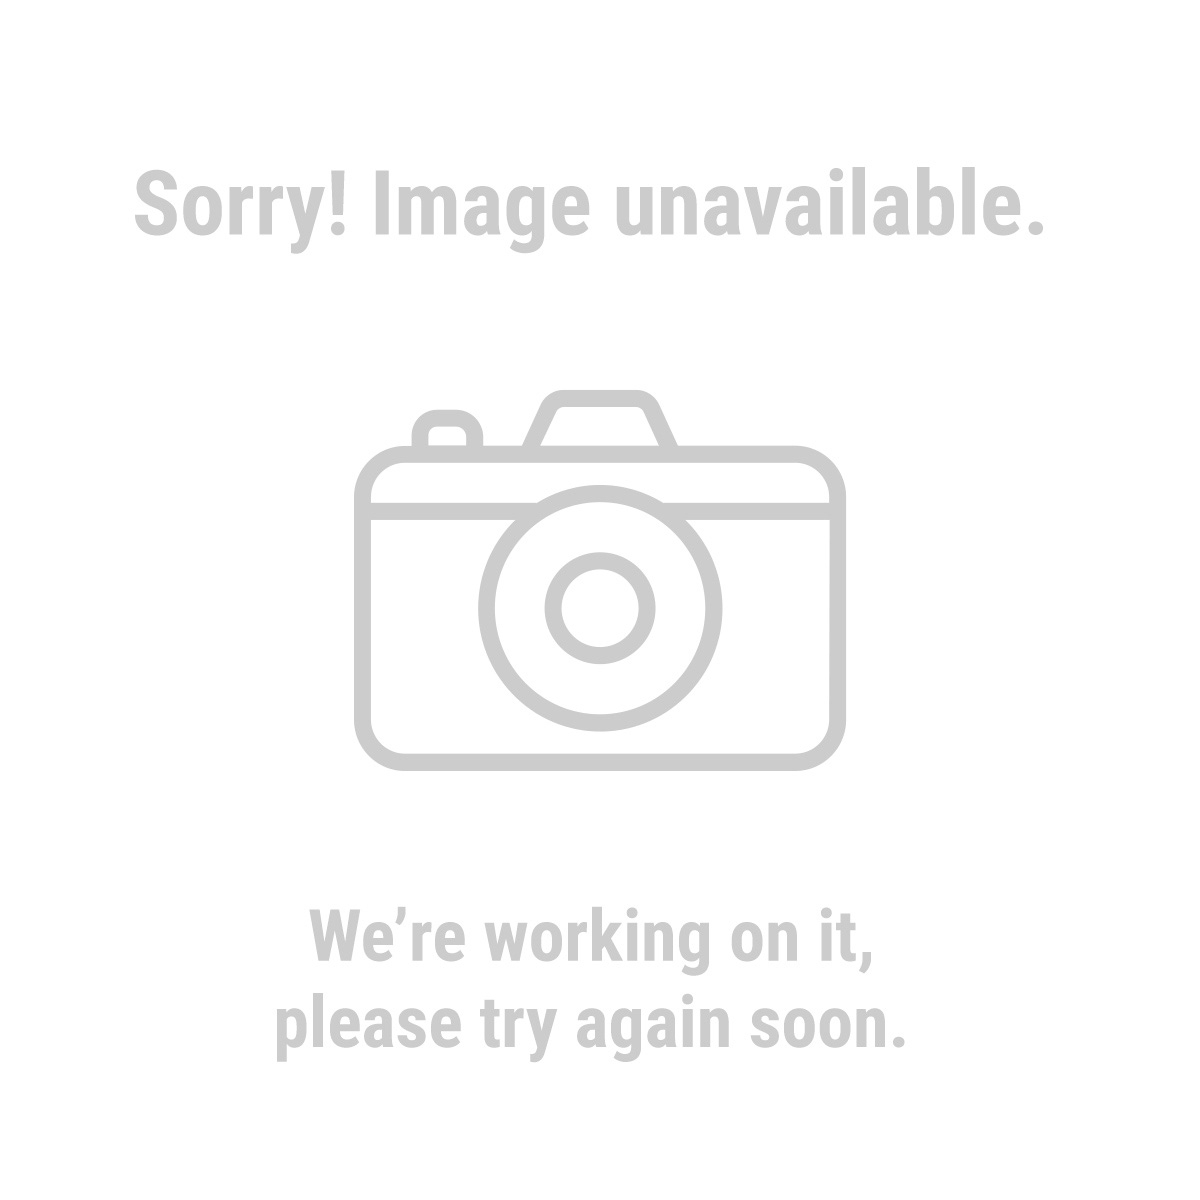 Greenwood® 61905 3/4 in. x 50 ft. Commercial Duty Garden Hose